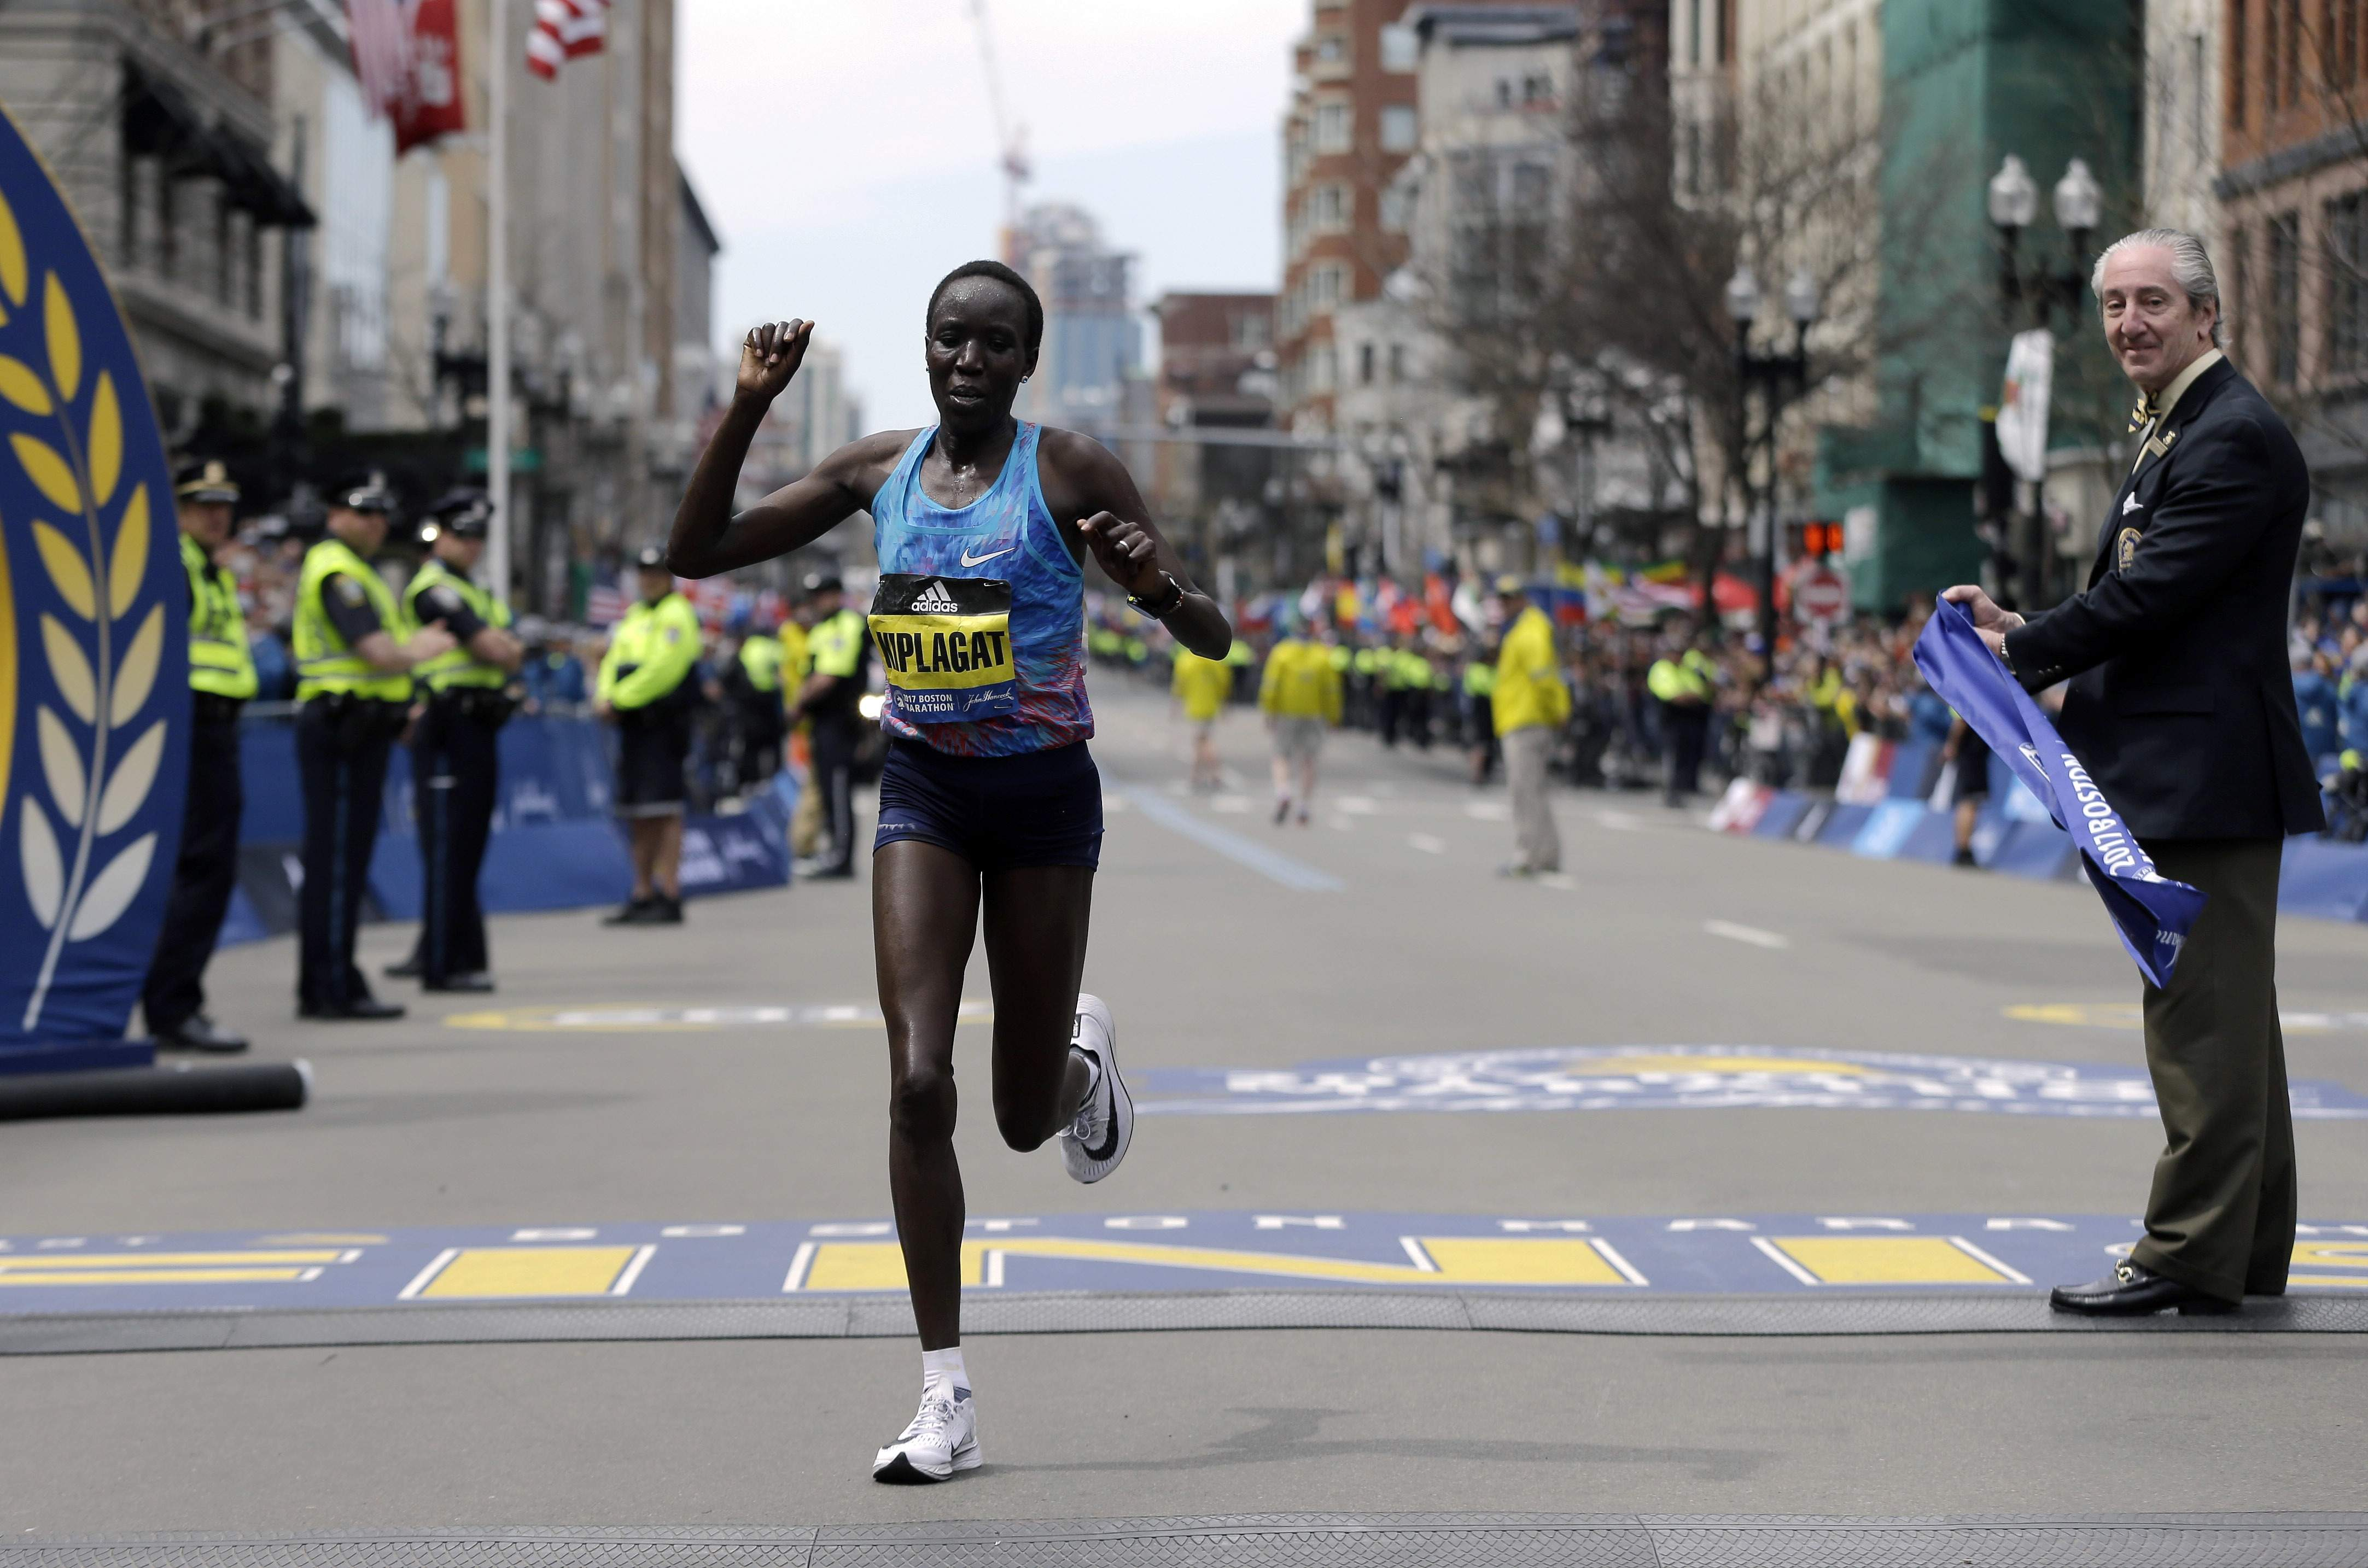 Edna Kiplagat, of Kenya, wins the women's division of the 121st Boston Marathon on Monday, April 17, 2017, in Boston. THE ASSOCIATED PRESS